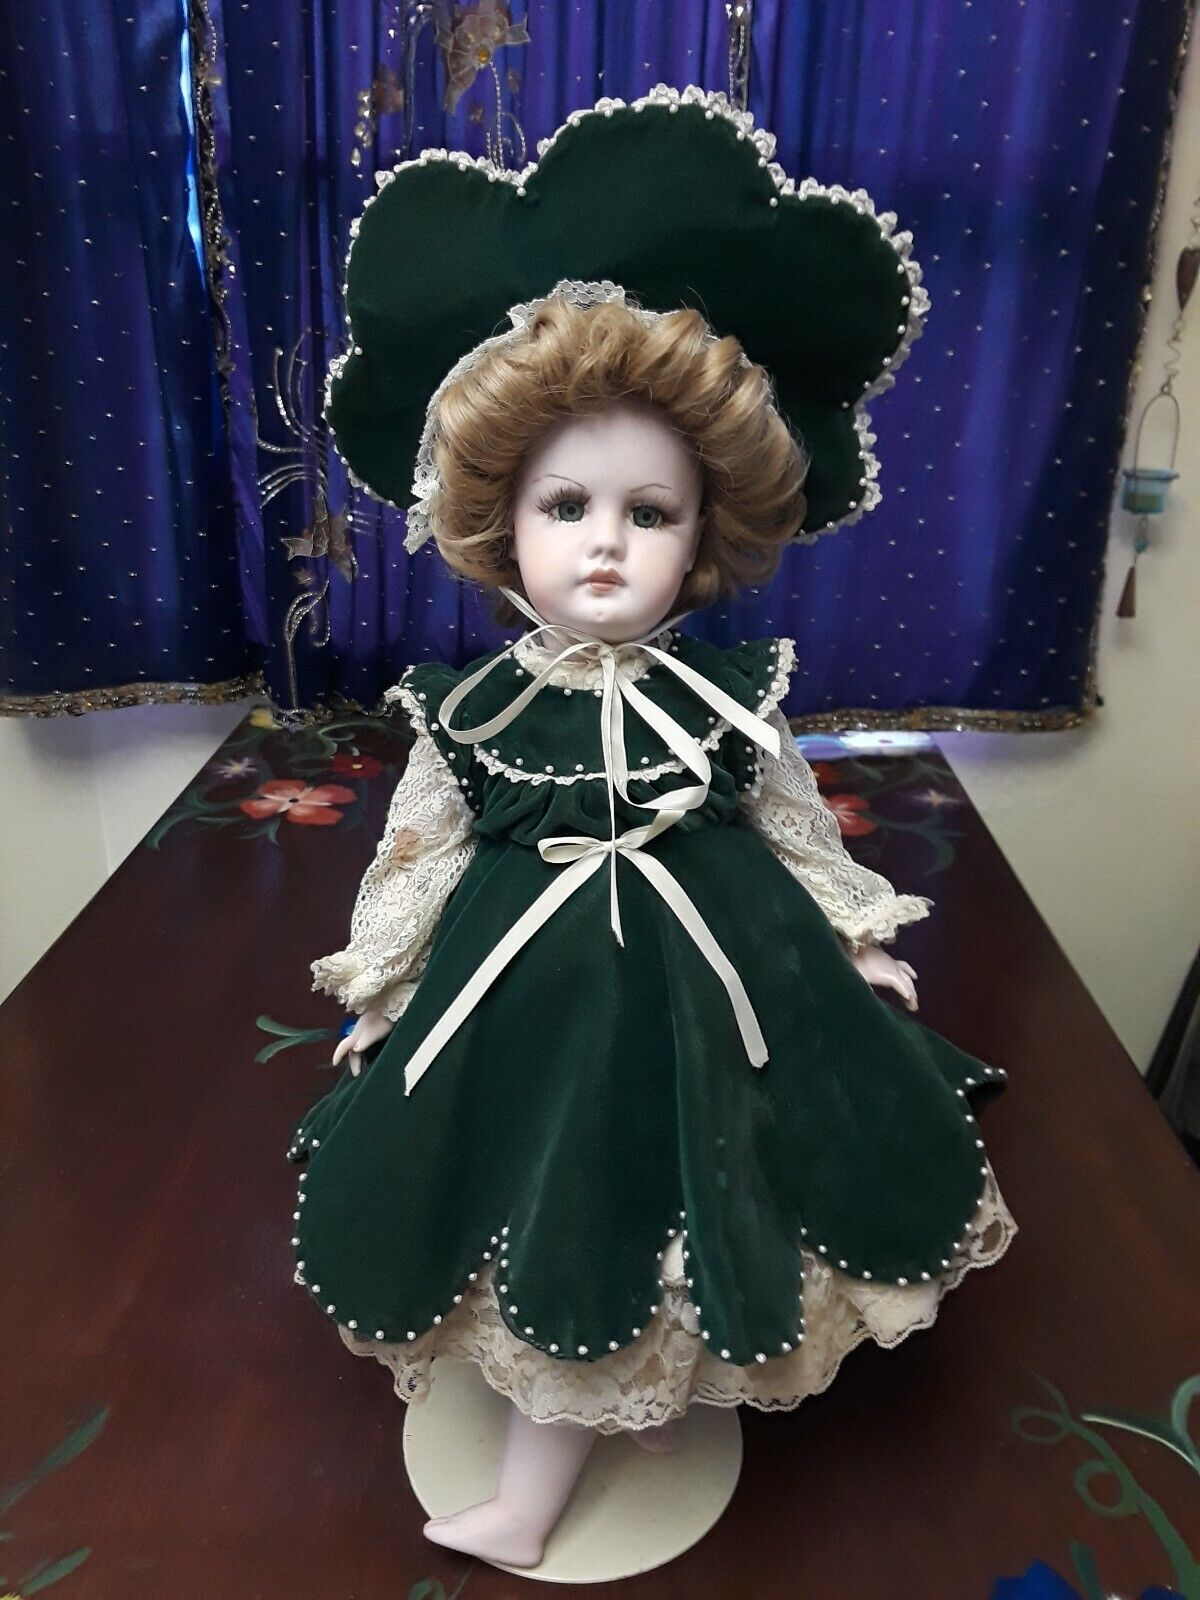 S 15 H 949 Bisque   Porcelain Doll 22  Tall